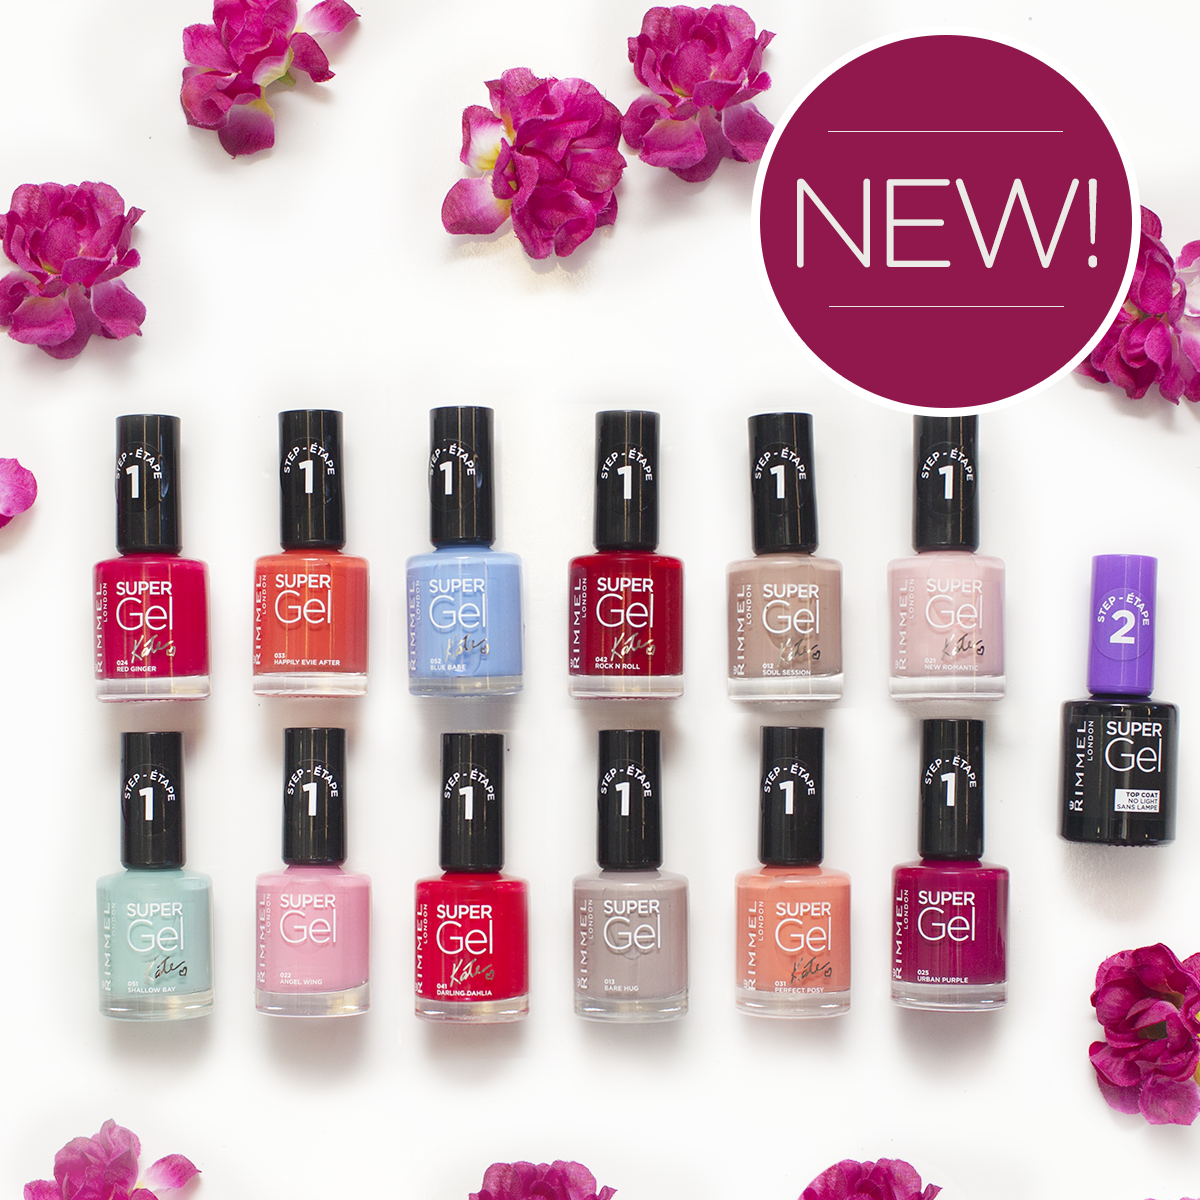 RT @LloydsPharmIre: #GelPower- Launched #Rimmel SuperGel polishes! Want 6 colours & top coat? RT+F to enterpic.twitter.com/62CAK2cXeO